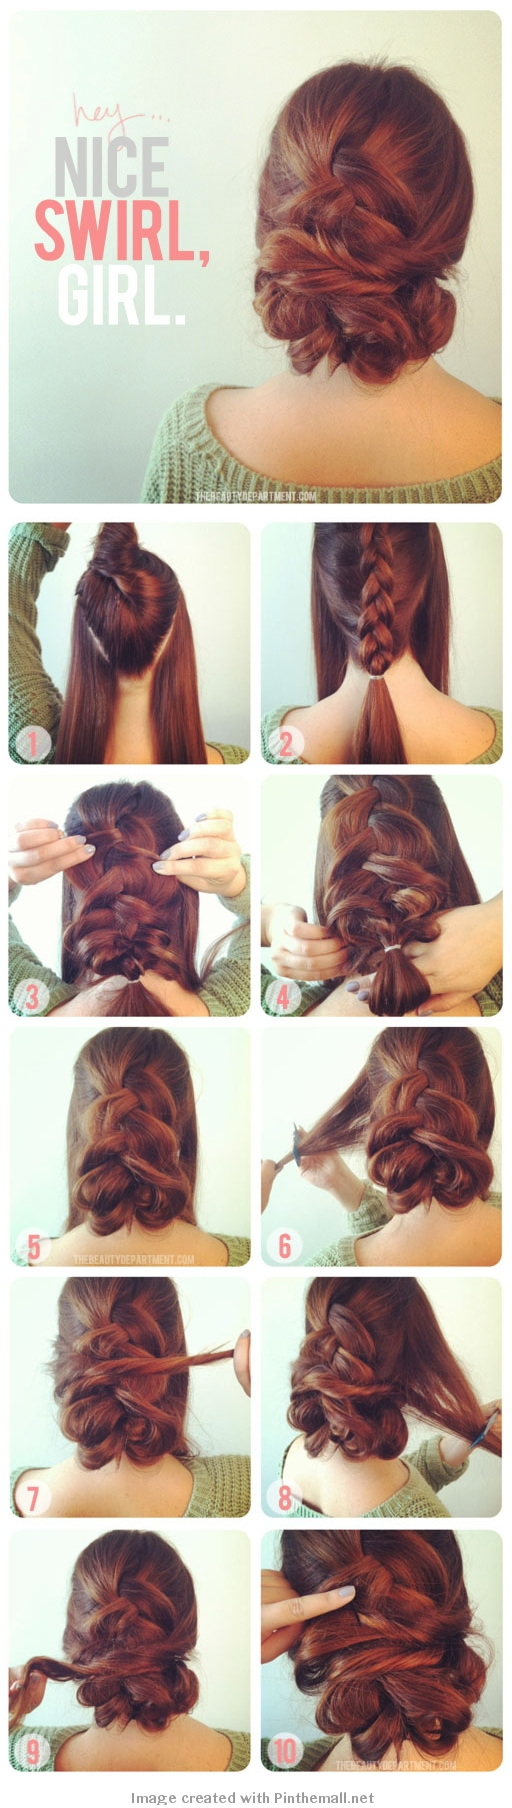 Braid and Swirl updo with picture tutorial.